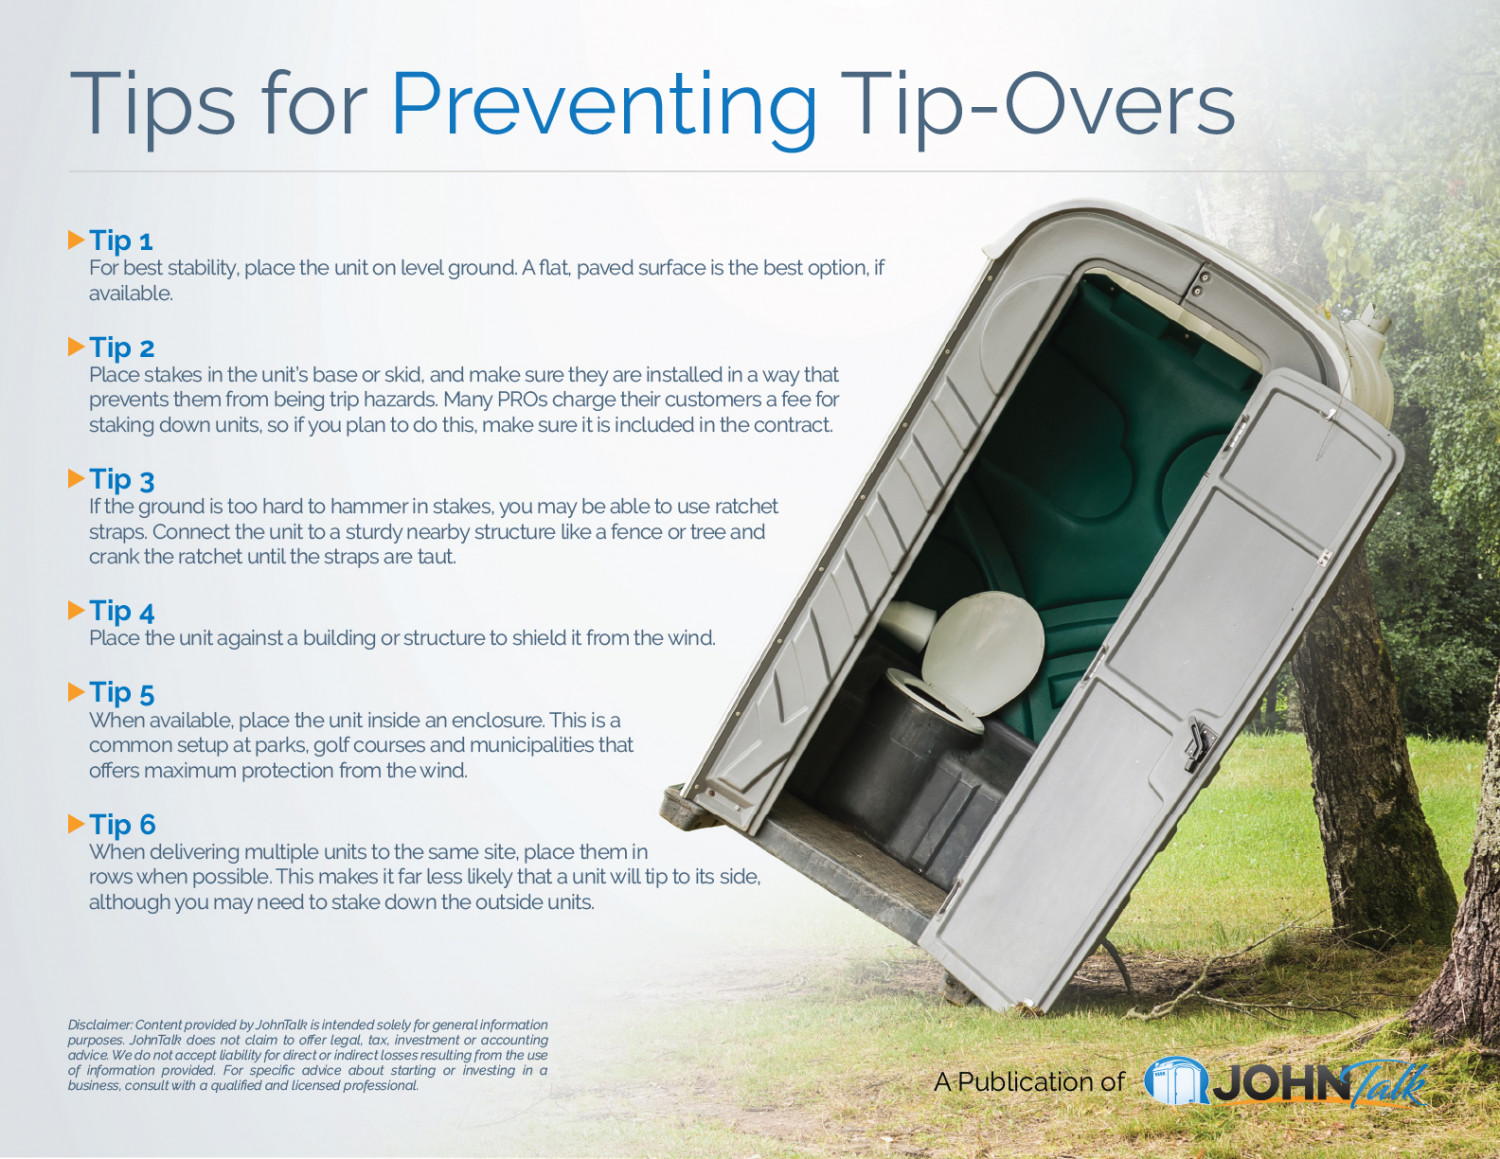 Tips for Preventing Tip-overs ... Infographic